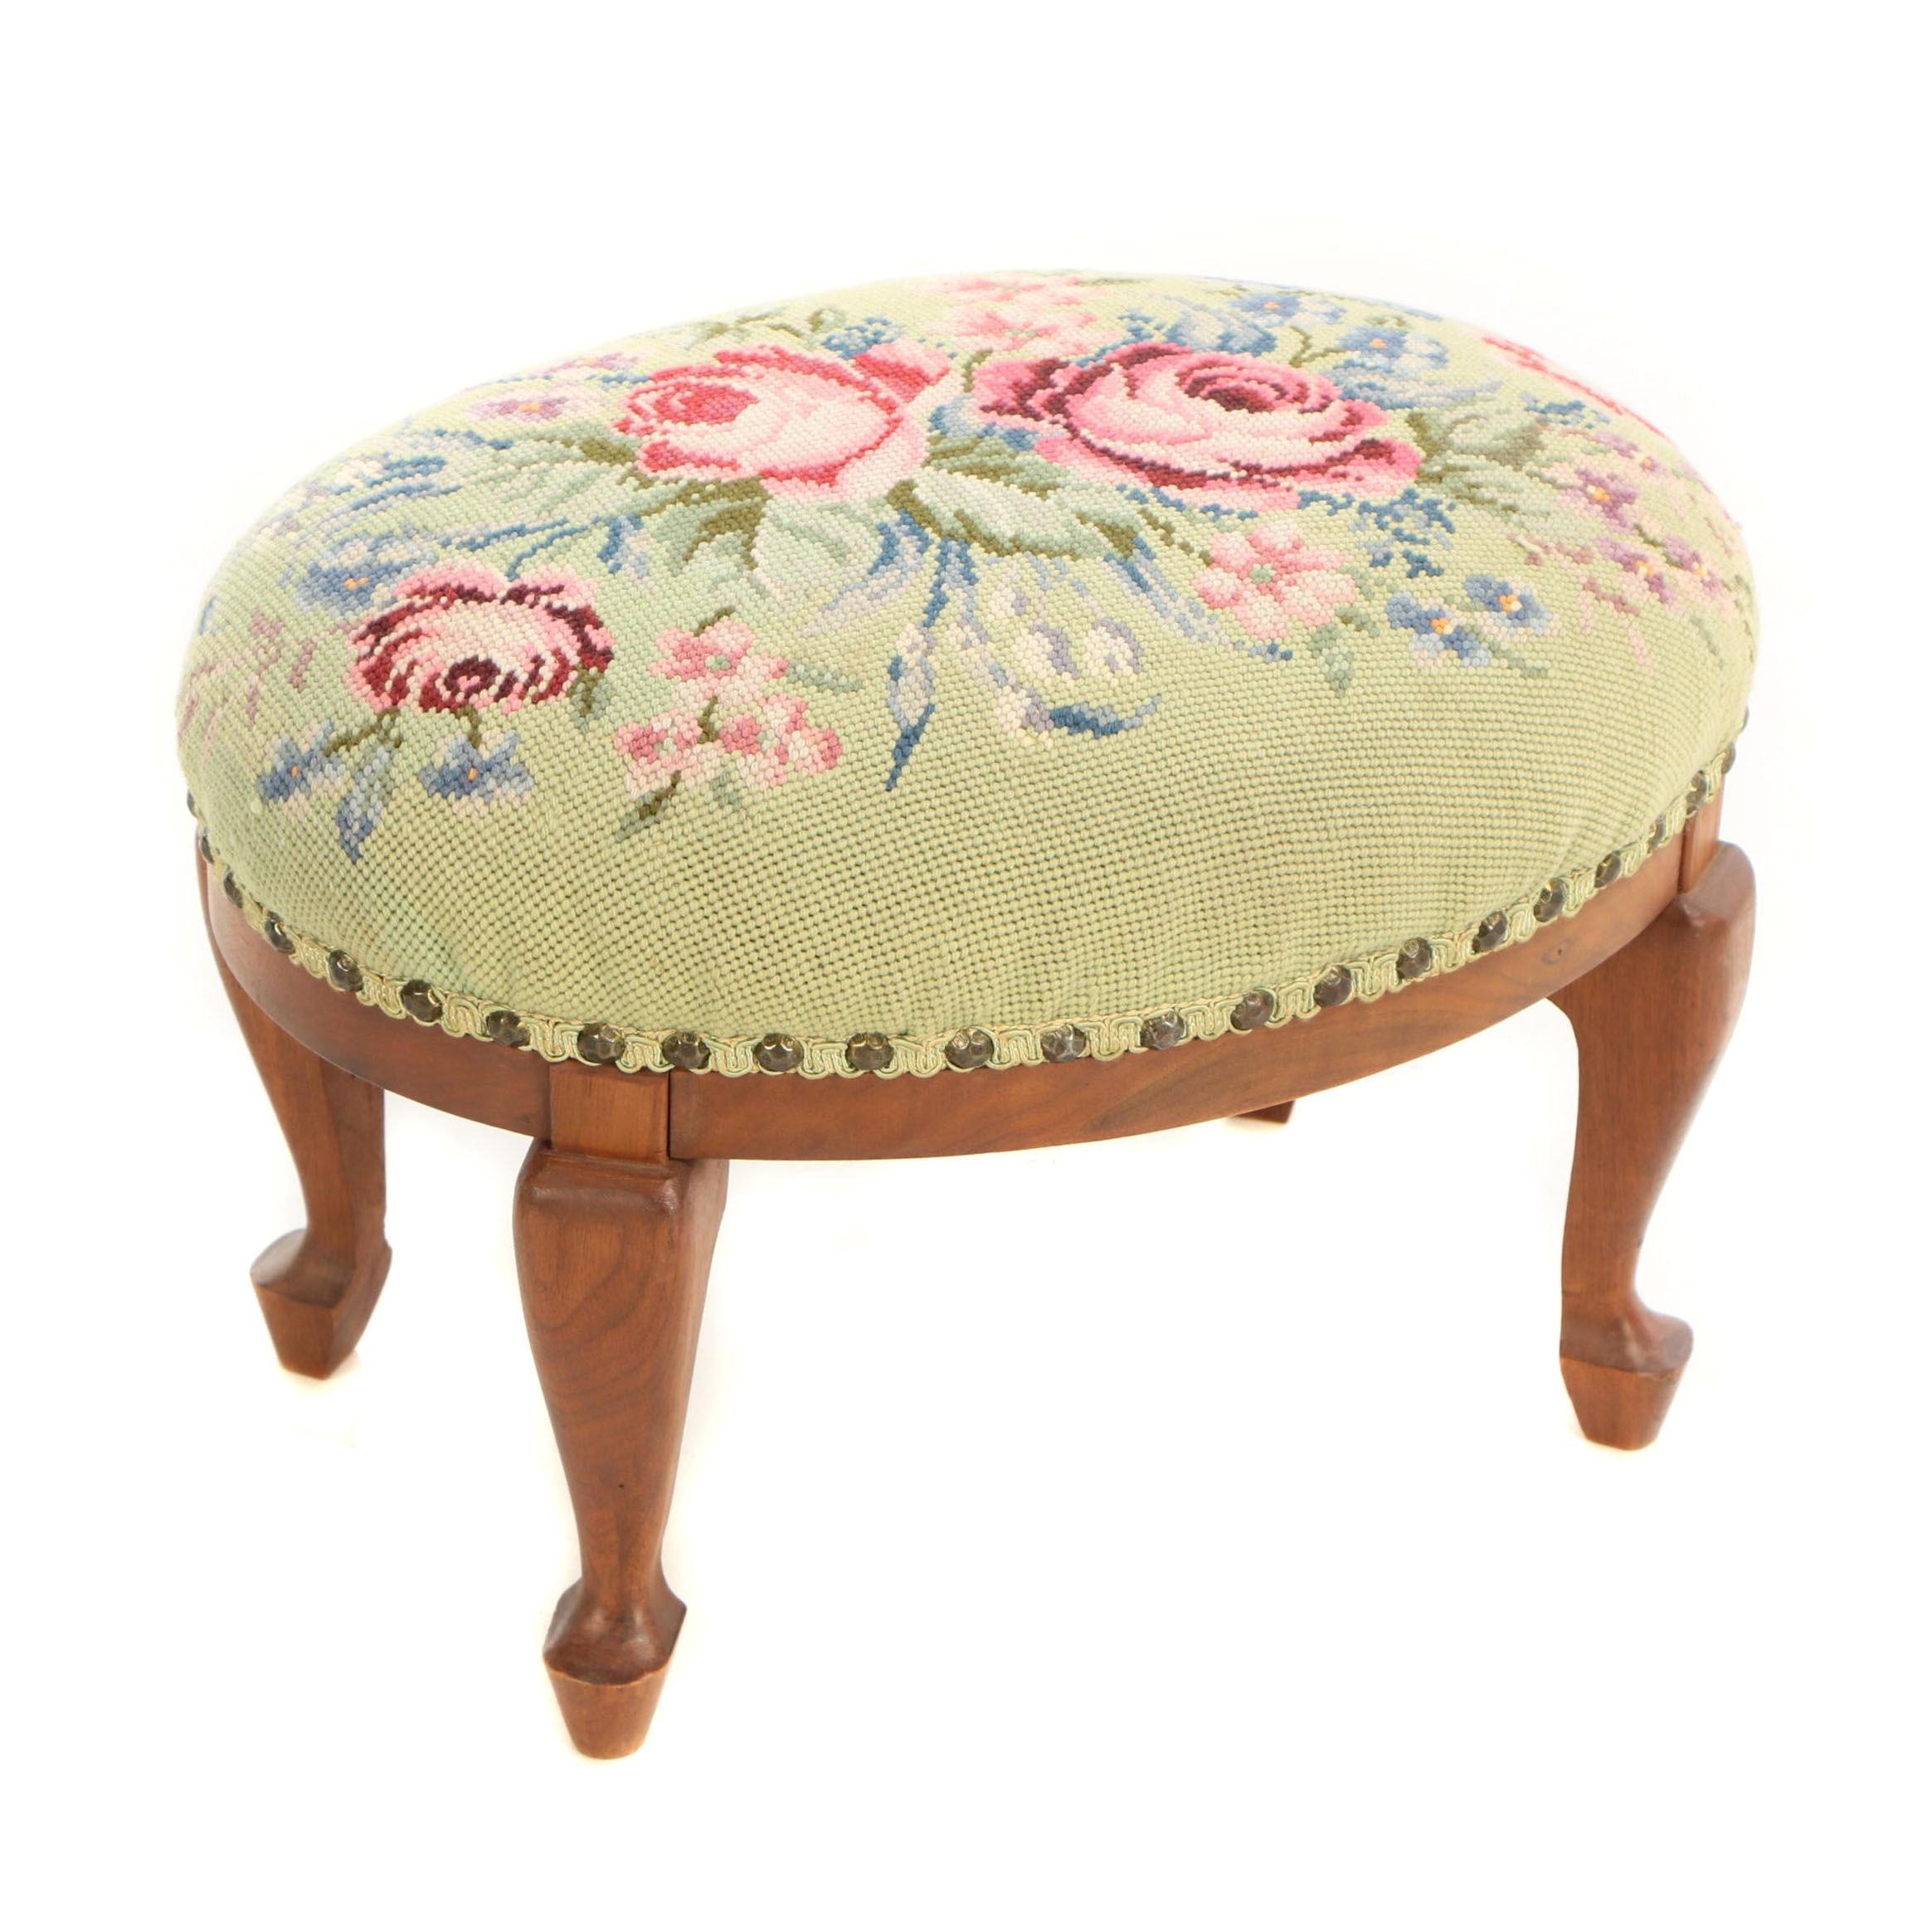 Queen Anne Style Walnut and Floral Needlepoint Footstool, 20th Century